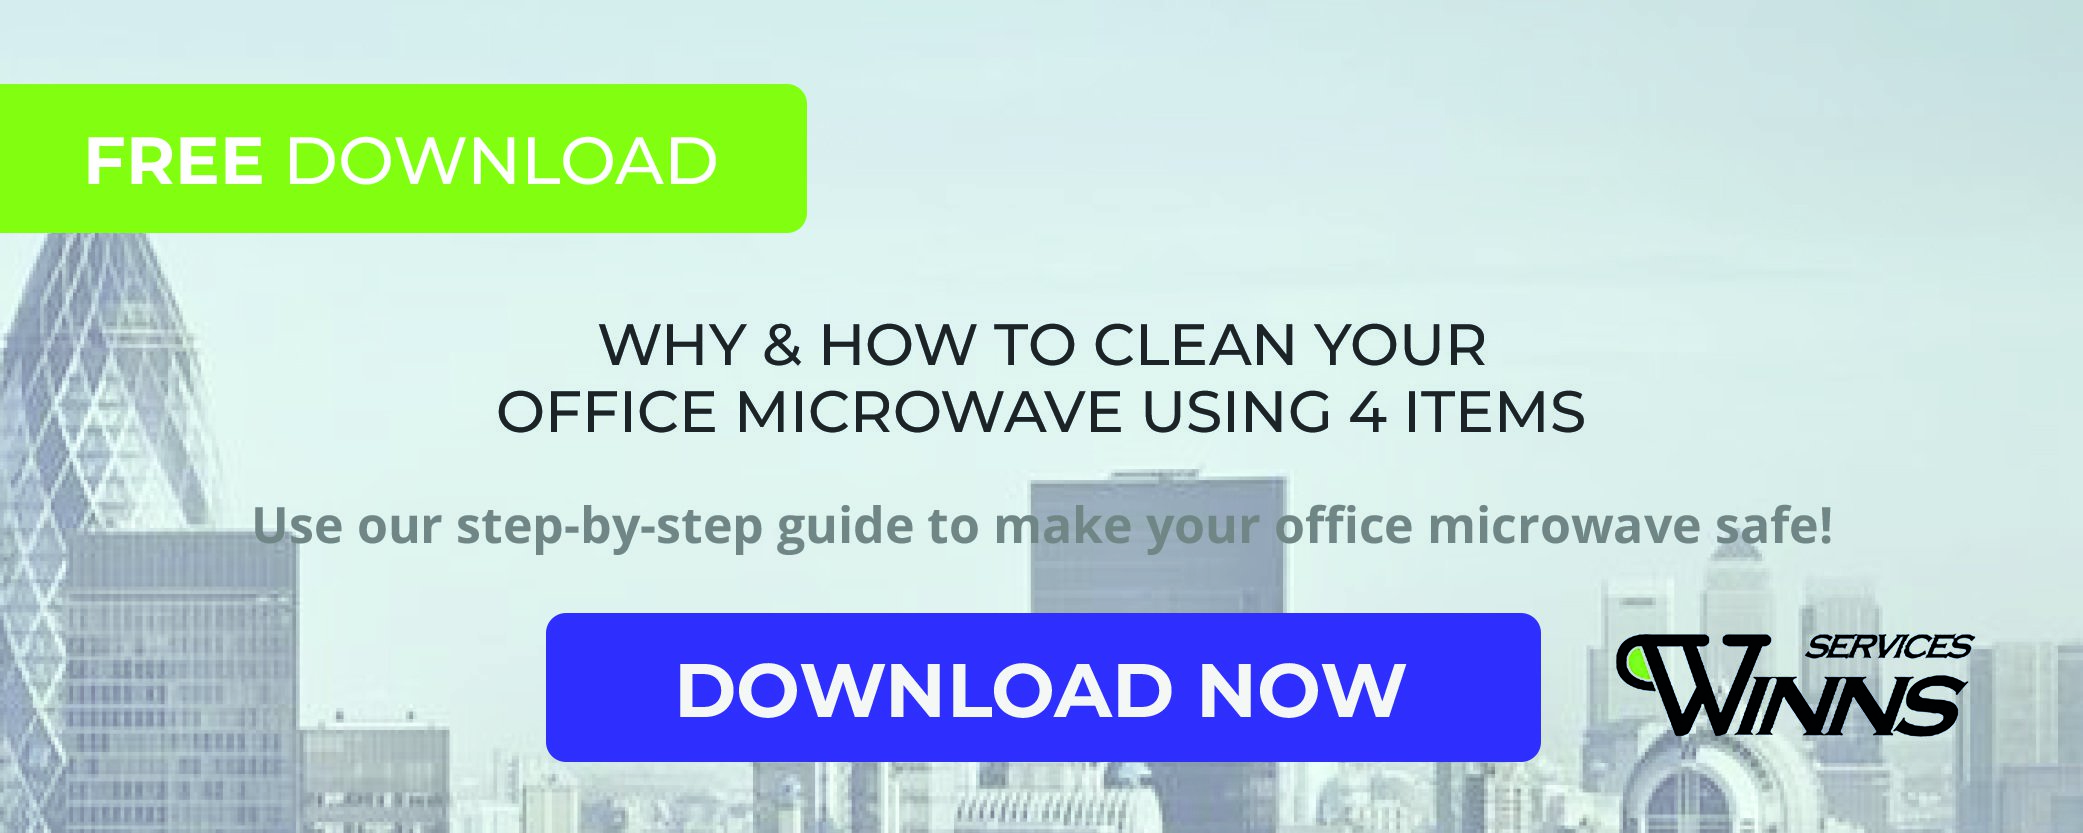 WINNS Step-By-Step Guide To Clean Your Office Microwave